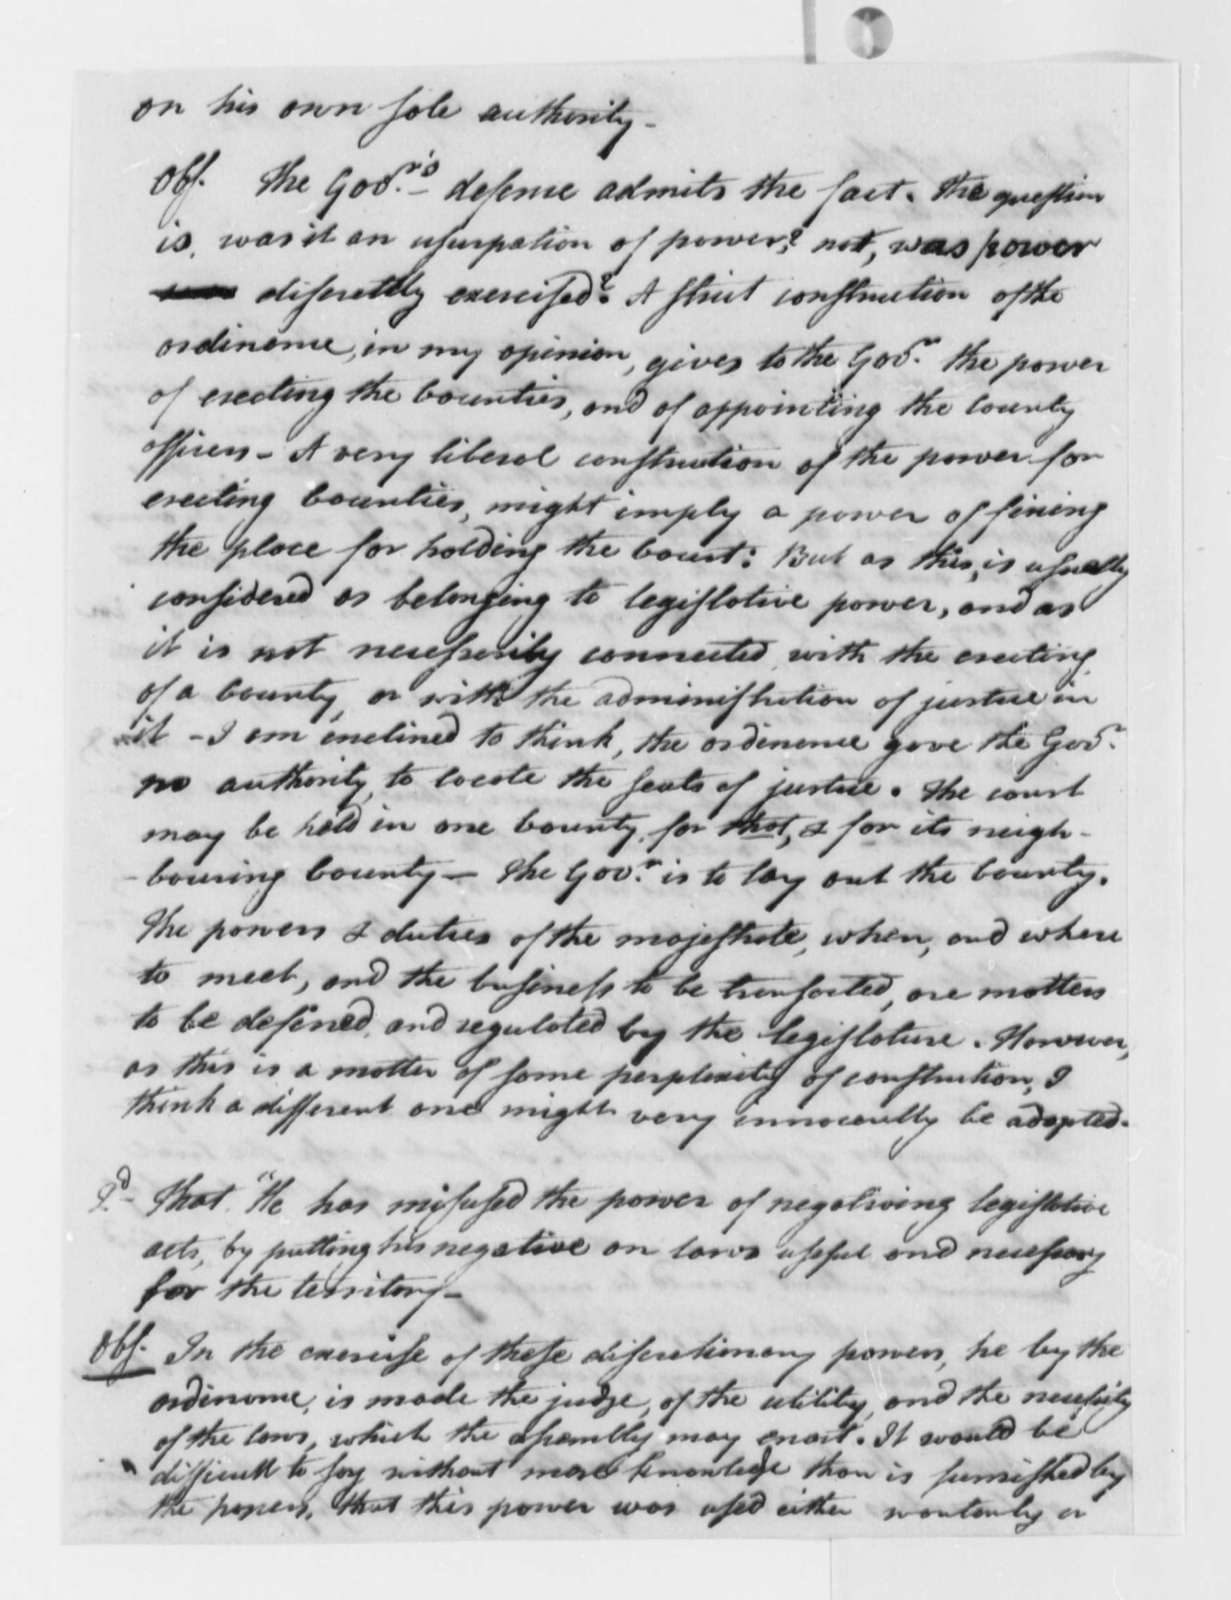 Levi Lincoln to Thomas Jefferson, May 23, 1802